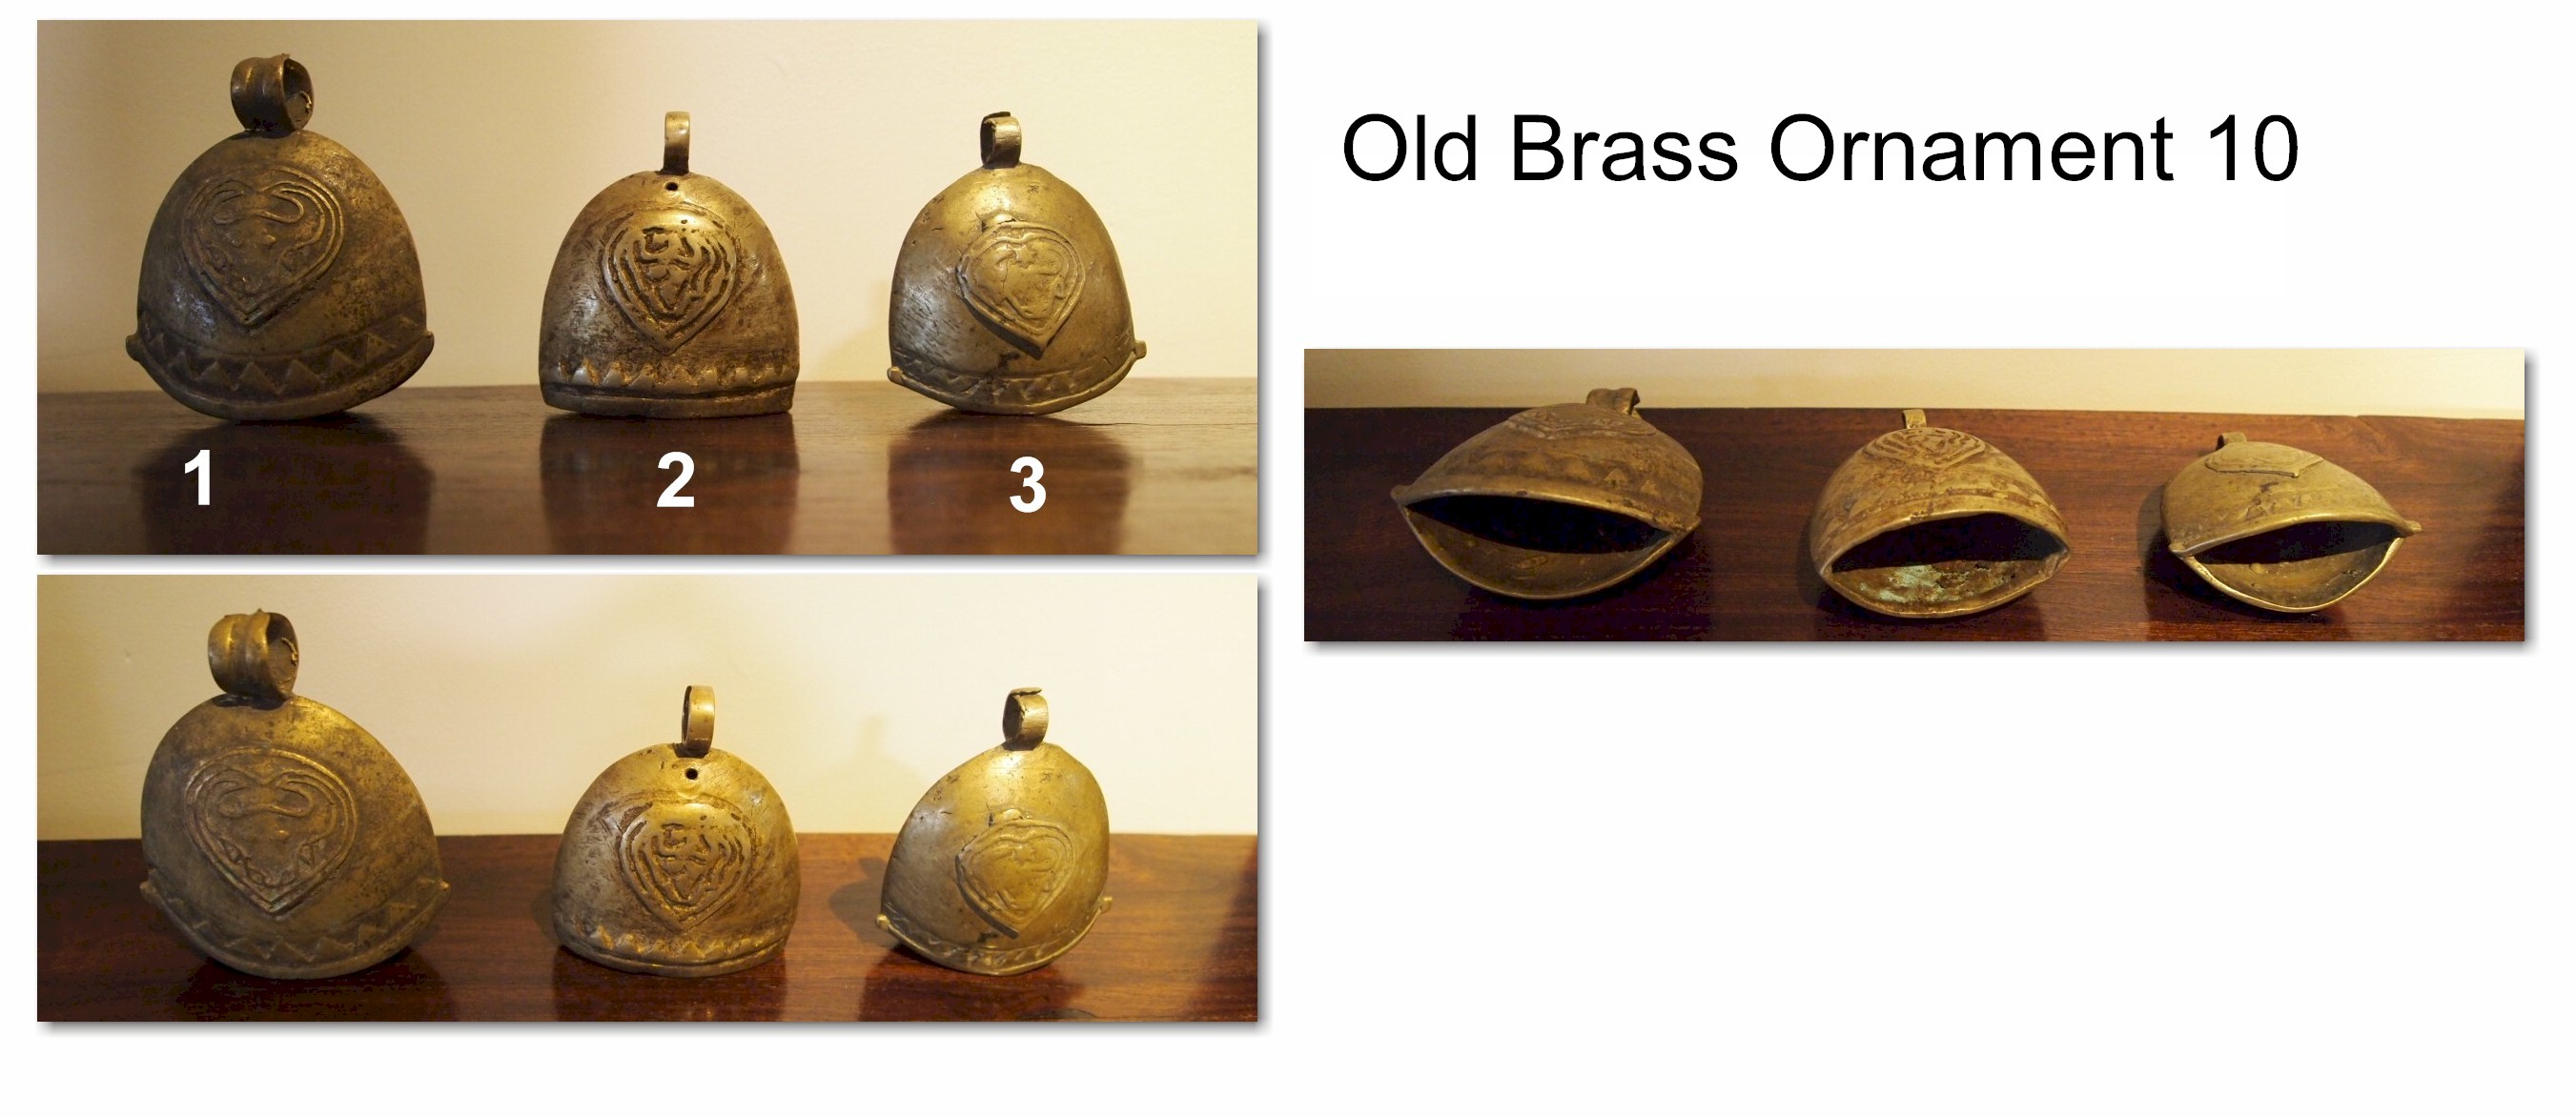 Old Brass Ornament 10